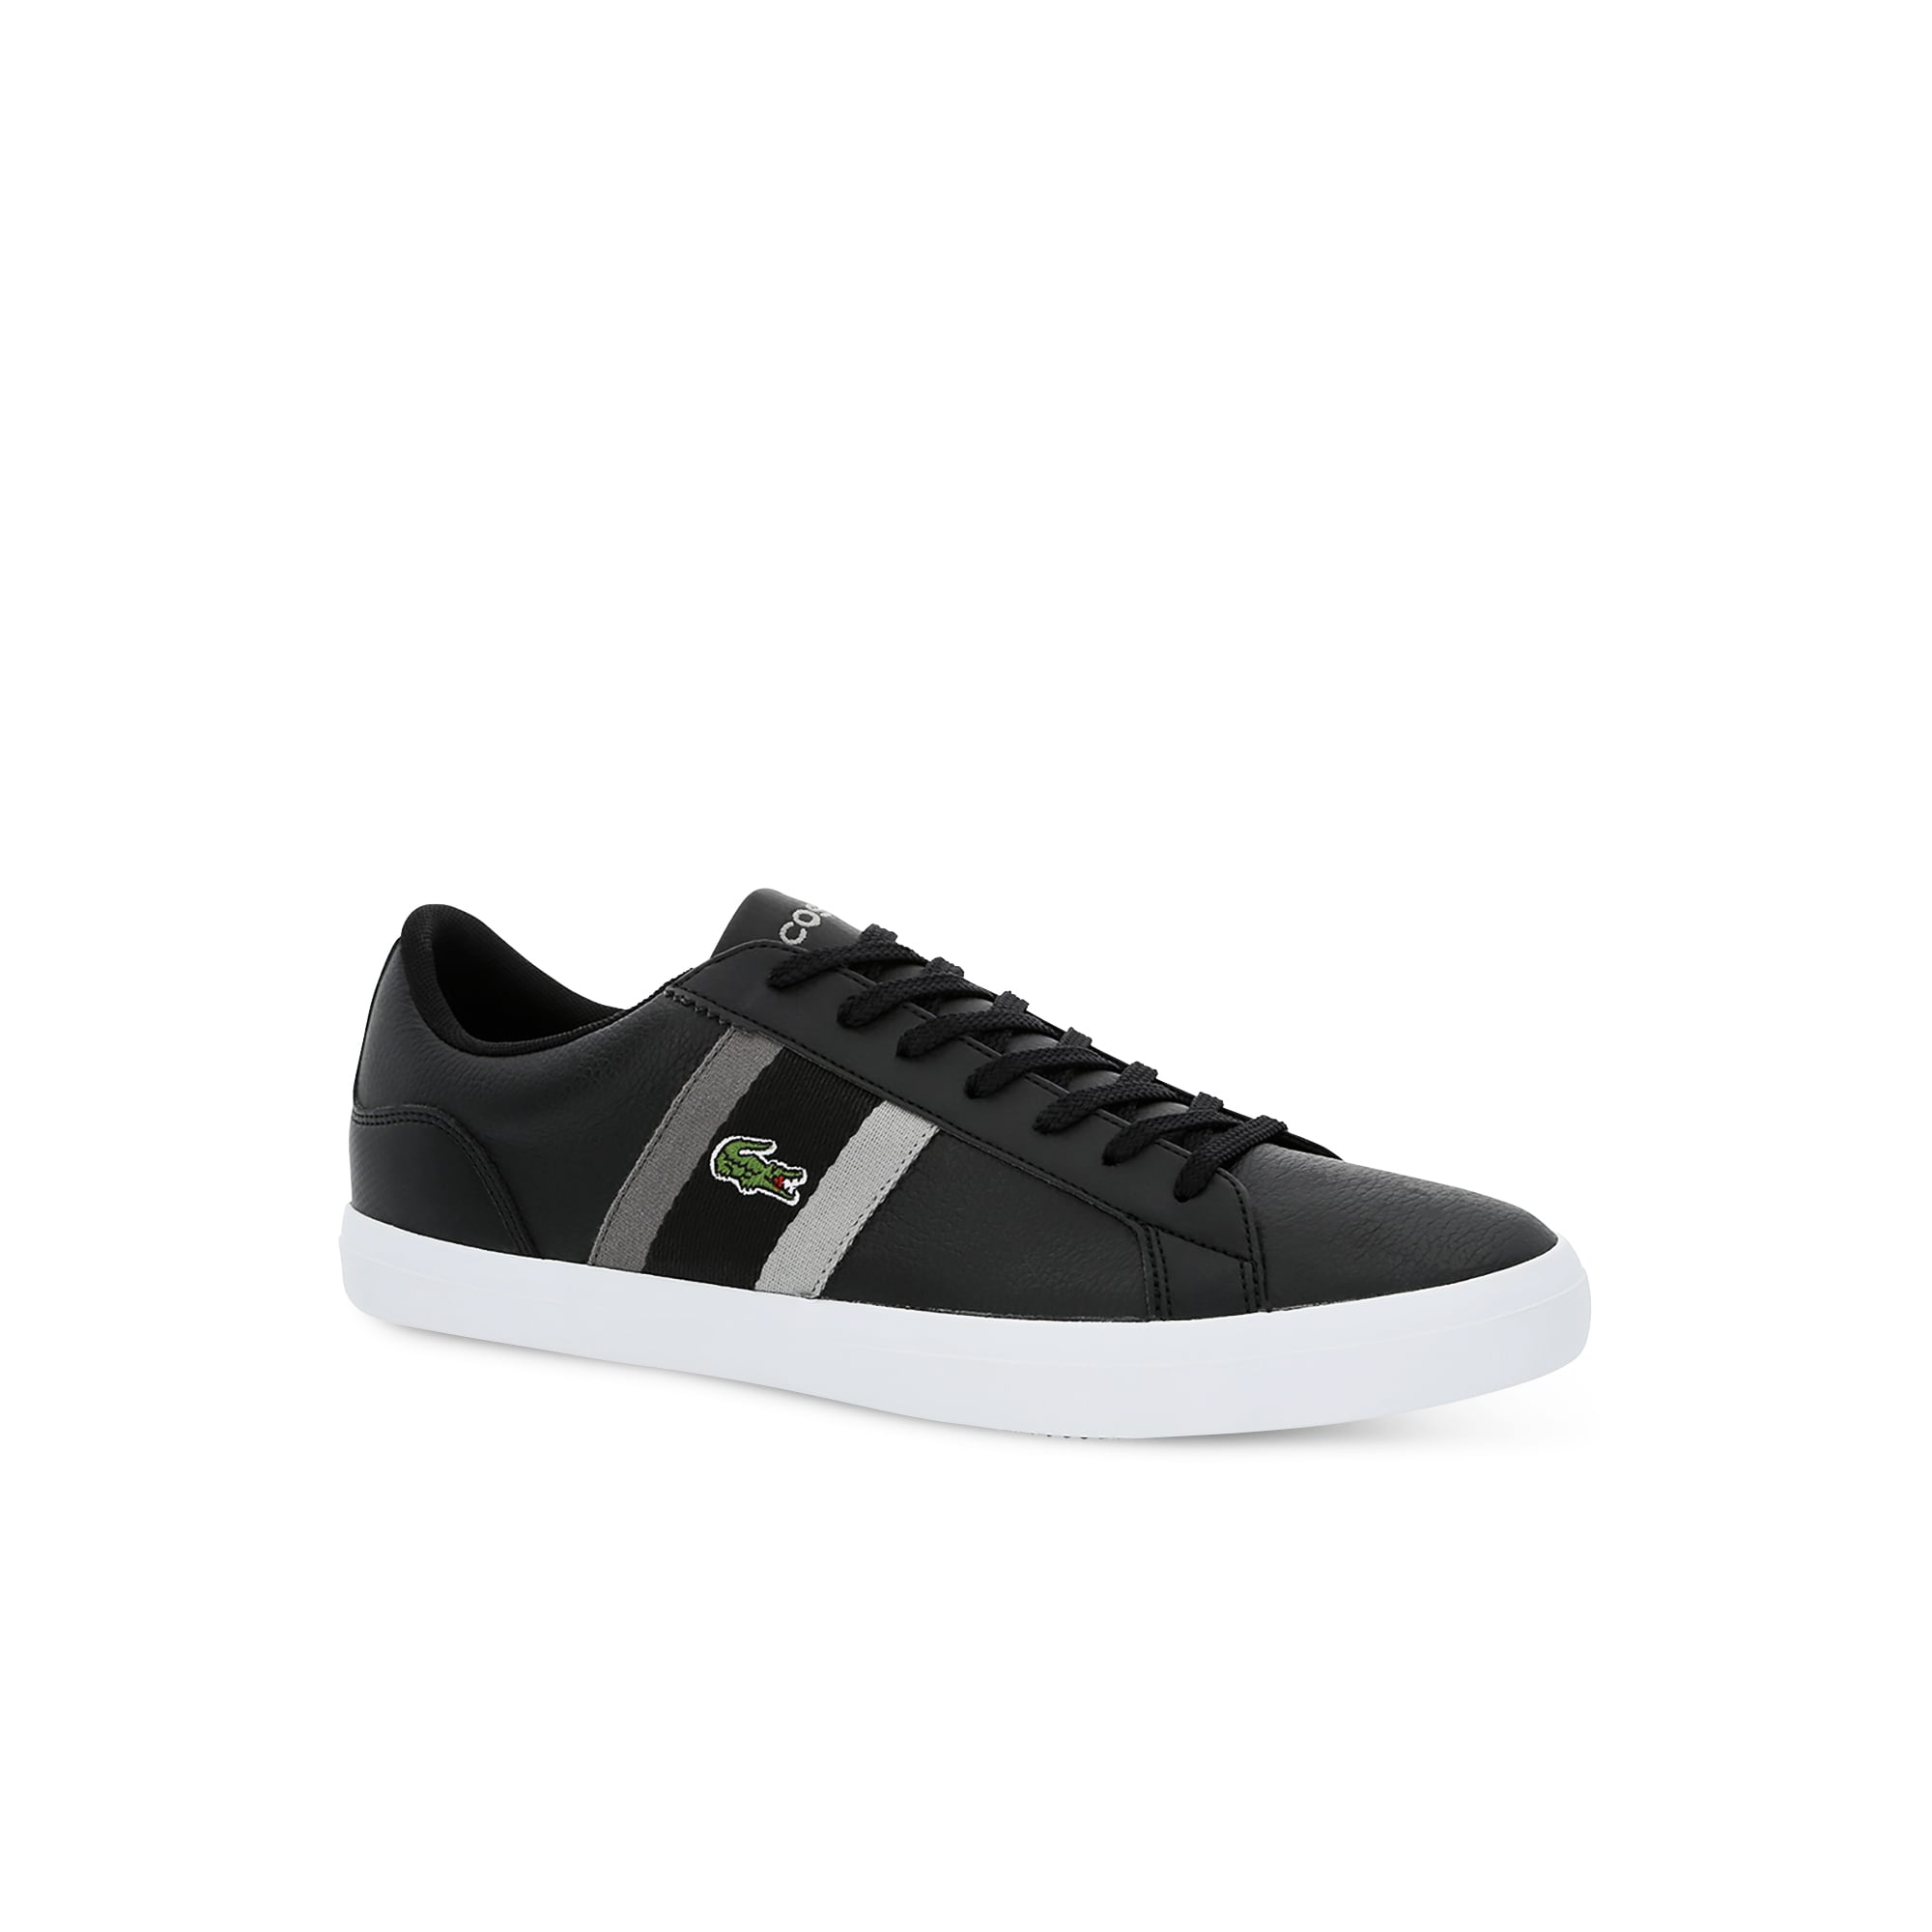 cd3ae0e9f74d0 Lacoste shoes for men  Sneakers